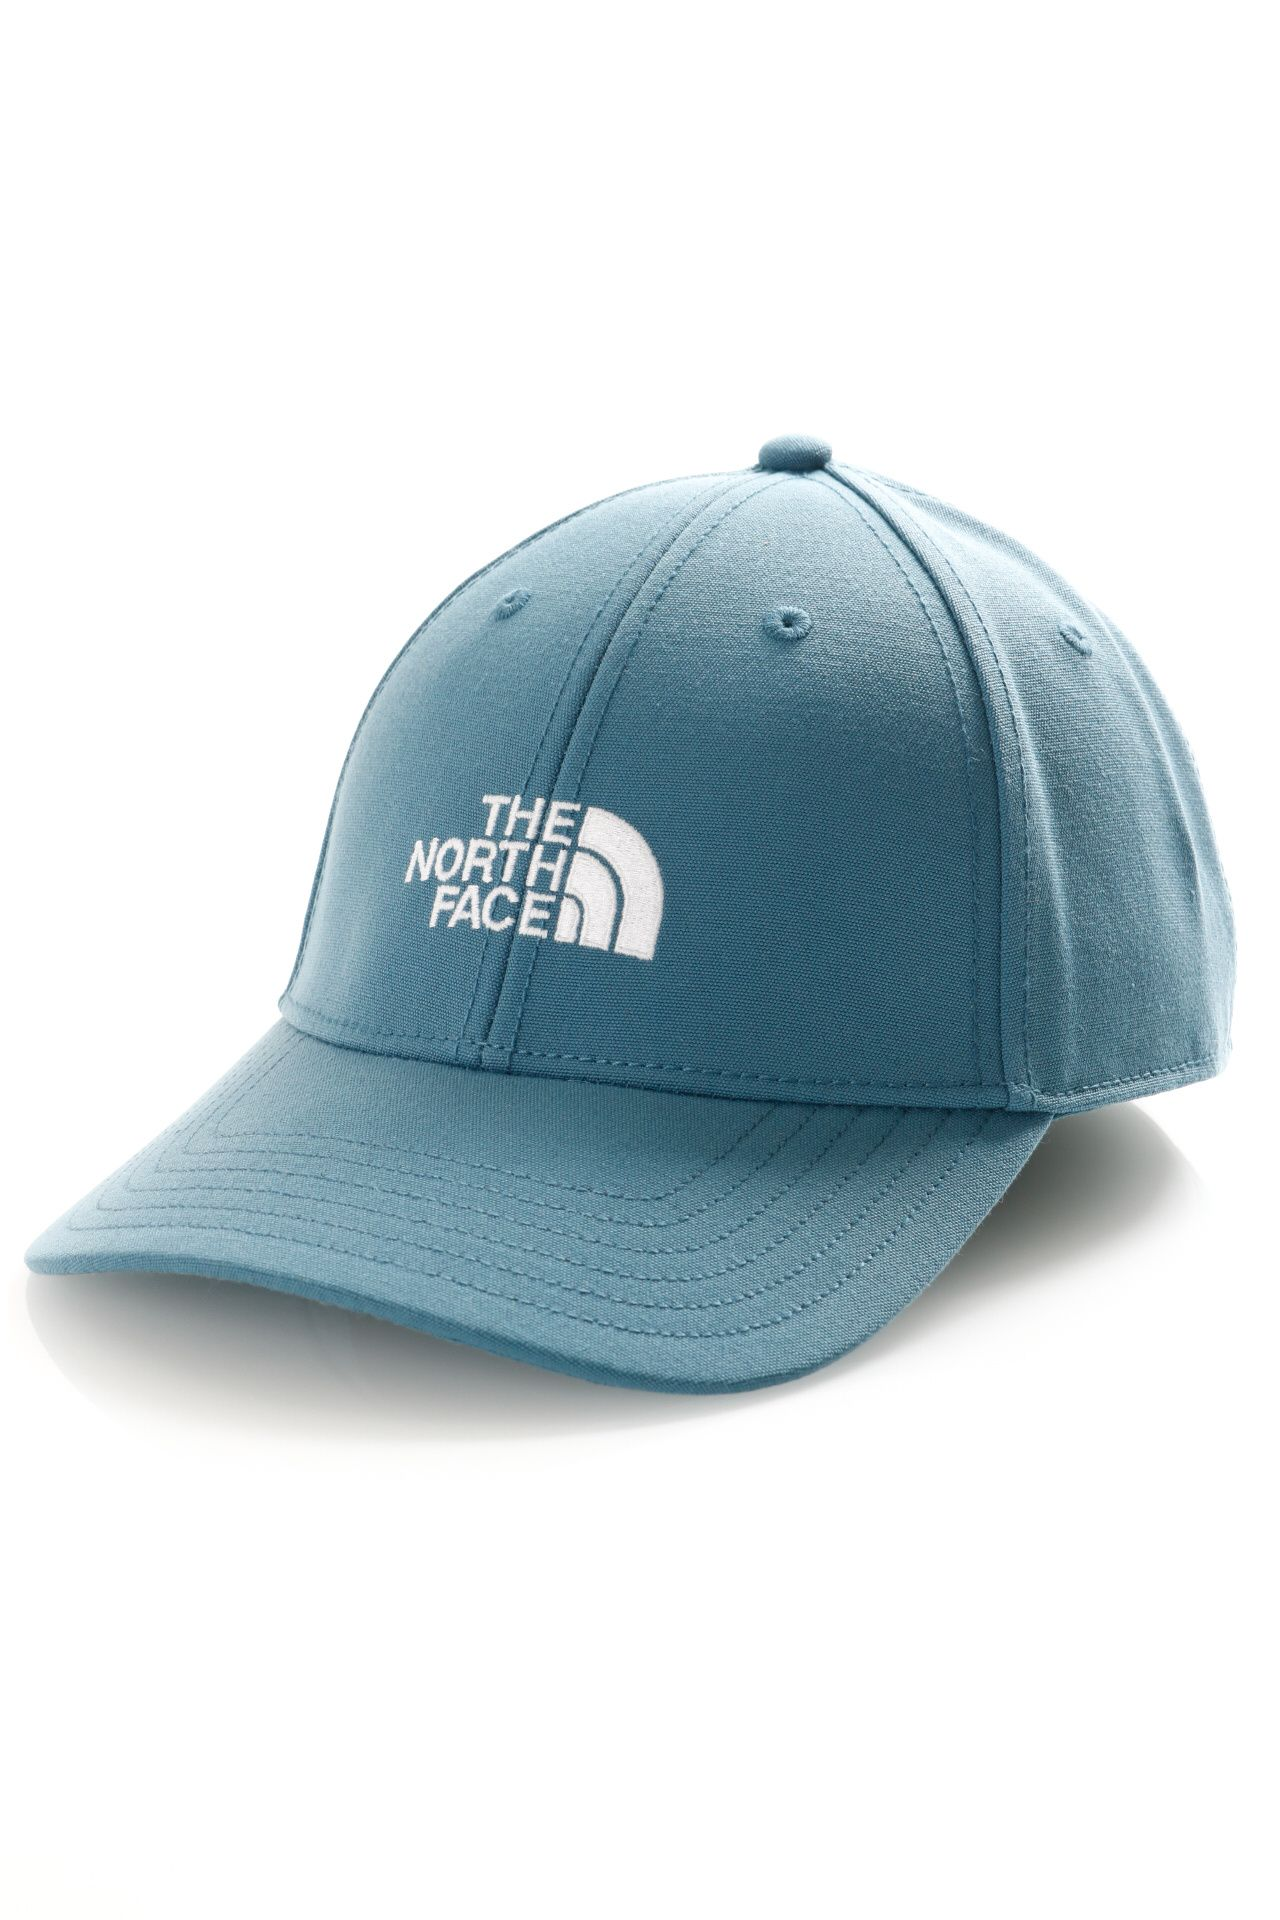 Afbeelding van The North Face Dad Cap Recycled 66 Classic Hat Mallard Blue NF0A4VSVQ311